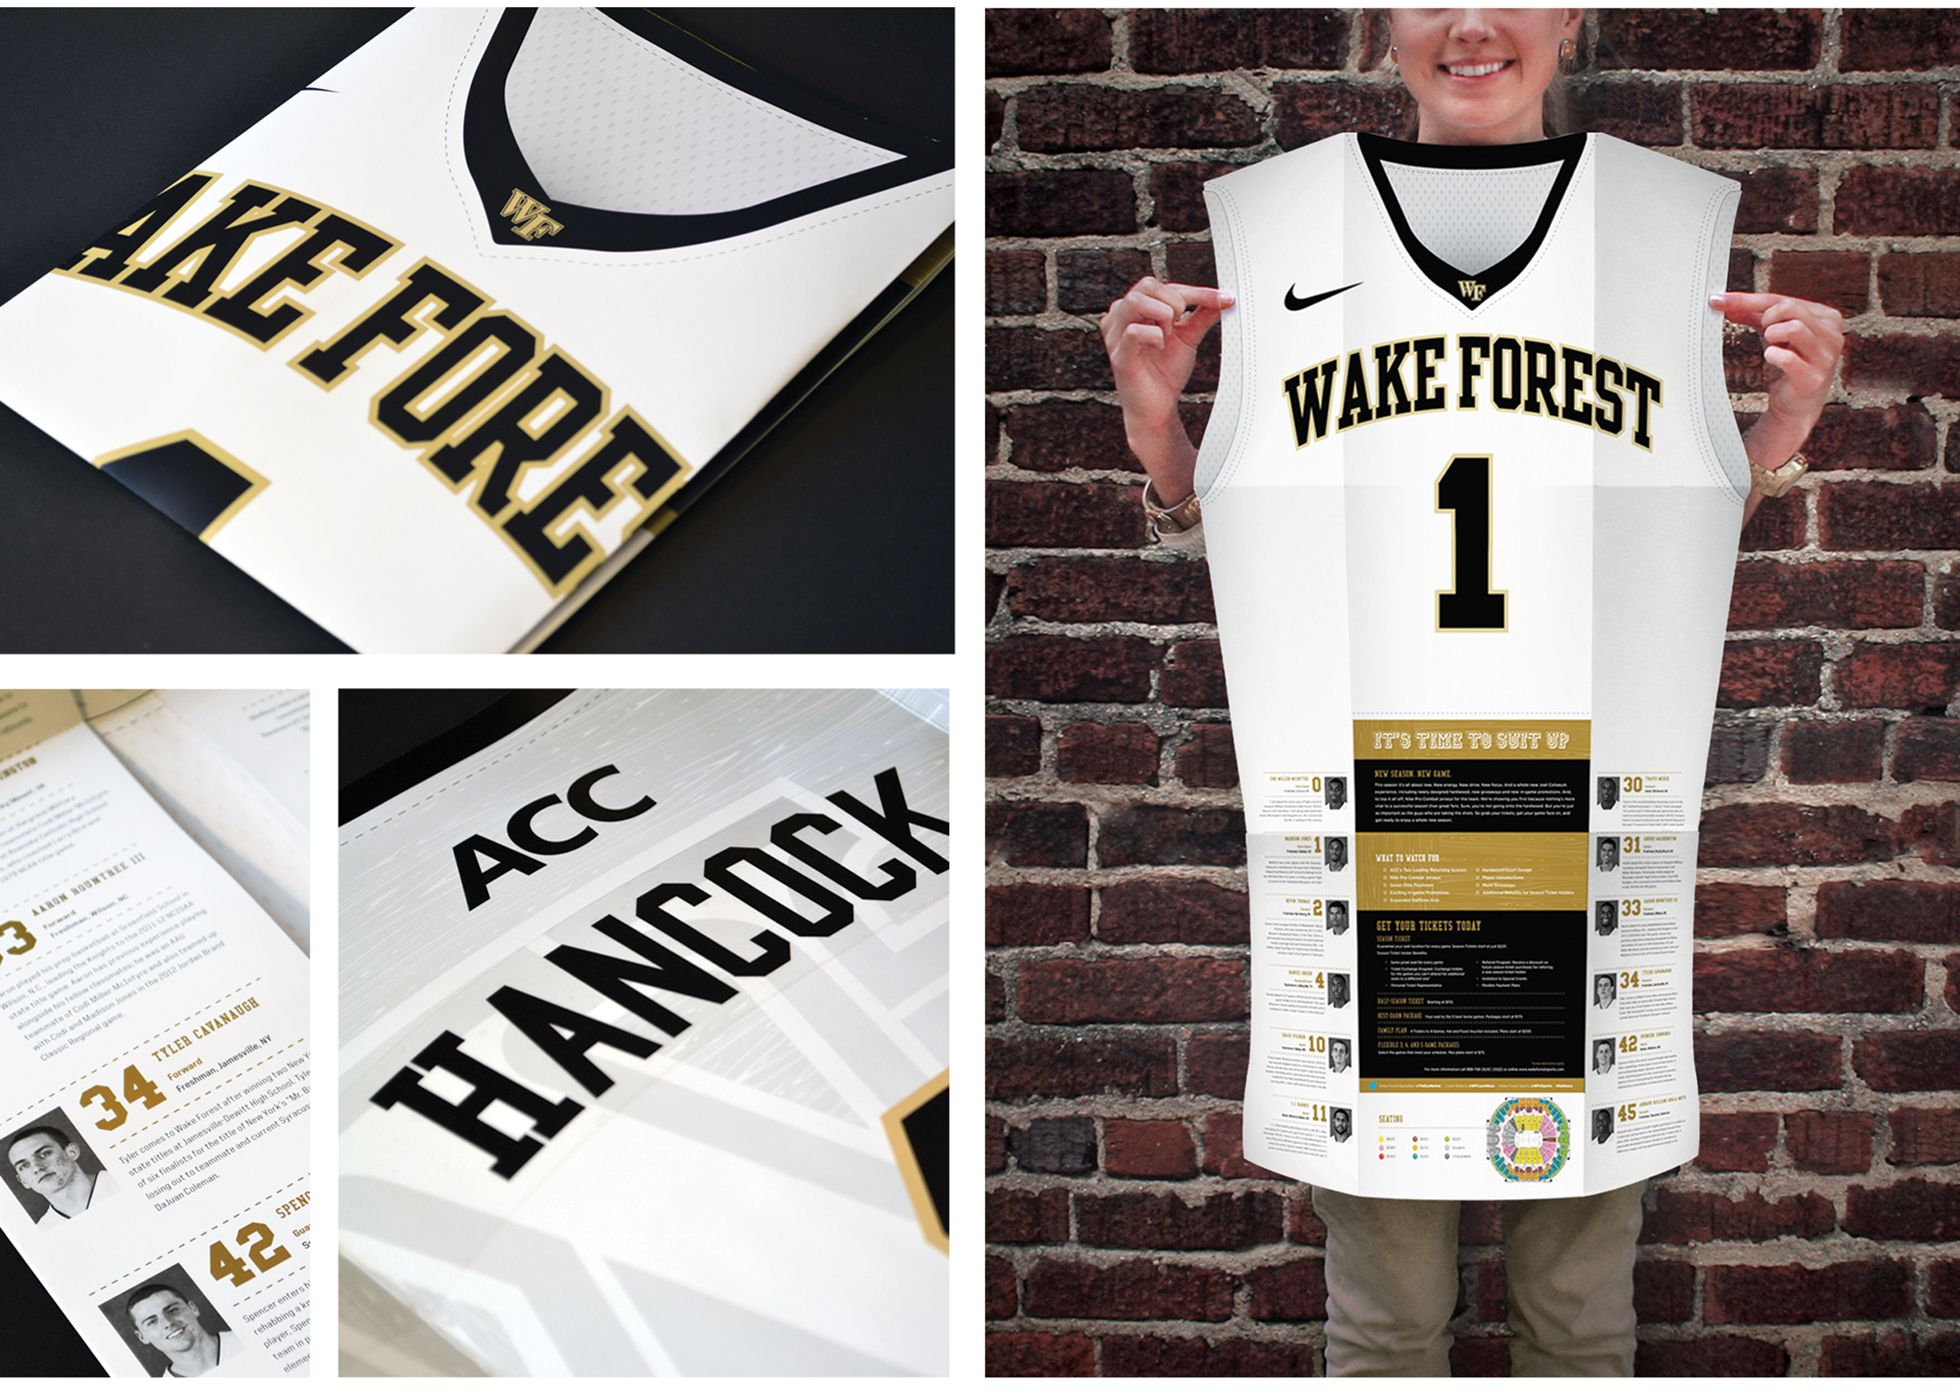 Wake Forest Athletics Wildfire Wake forest, Wake, Athlete